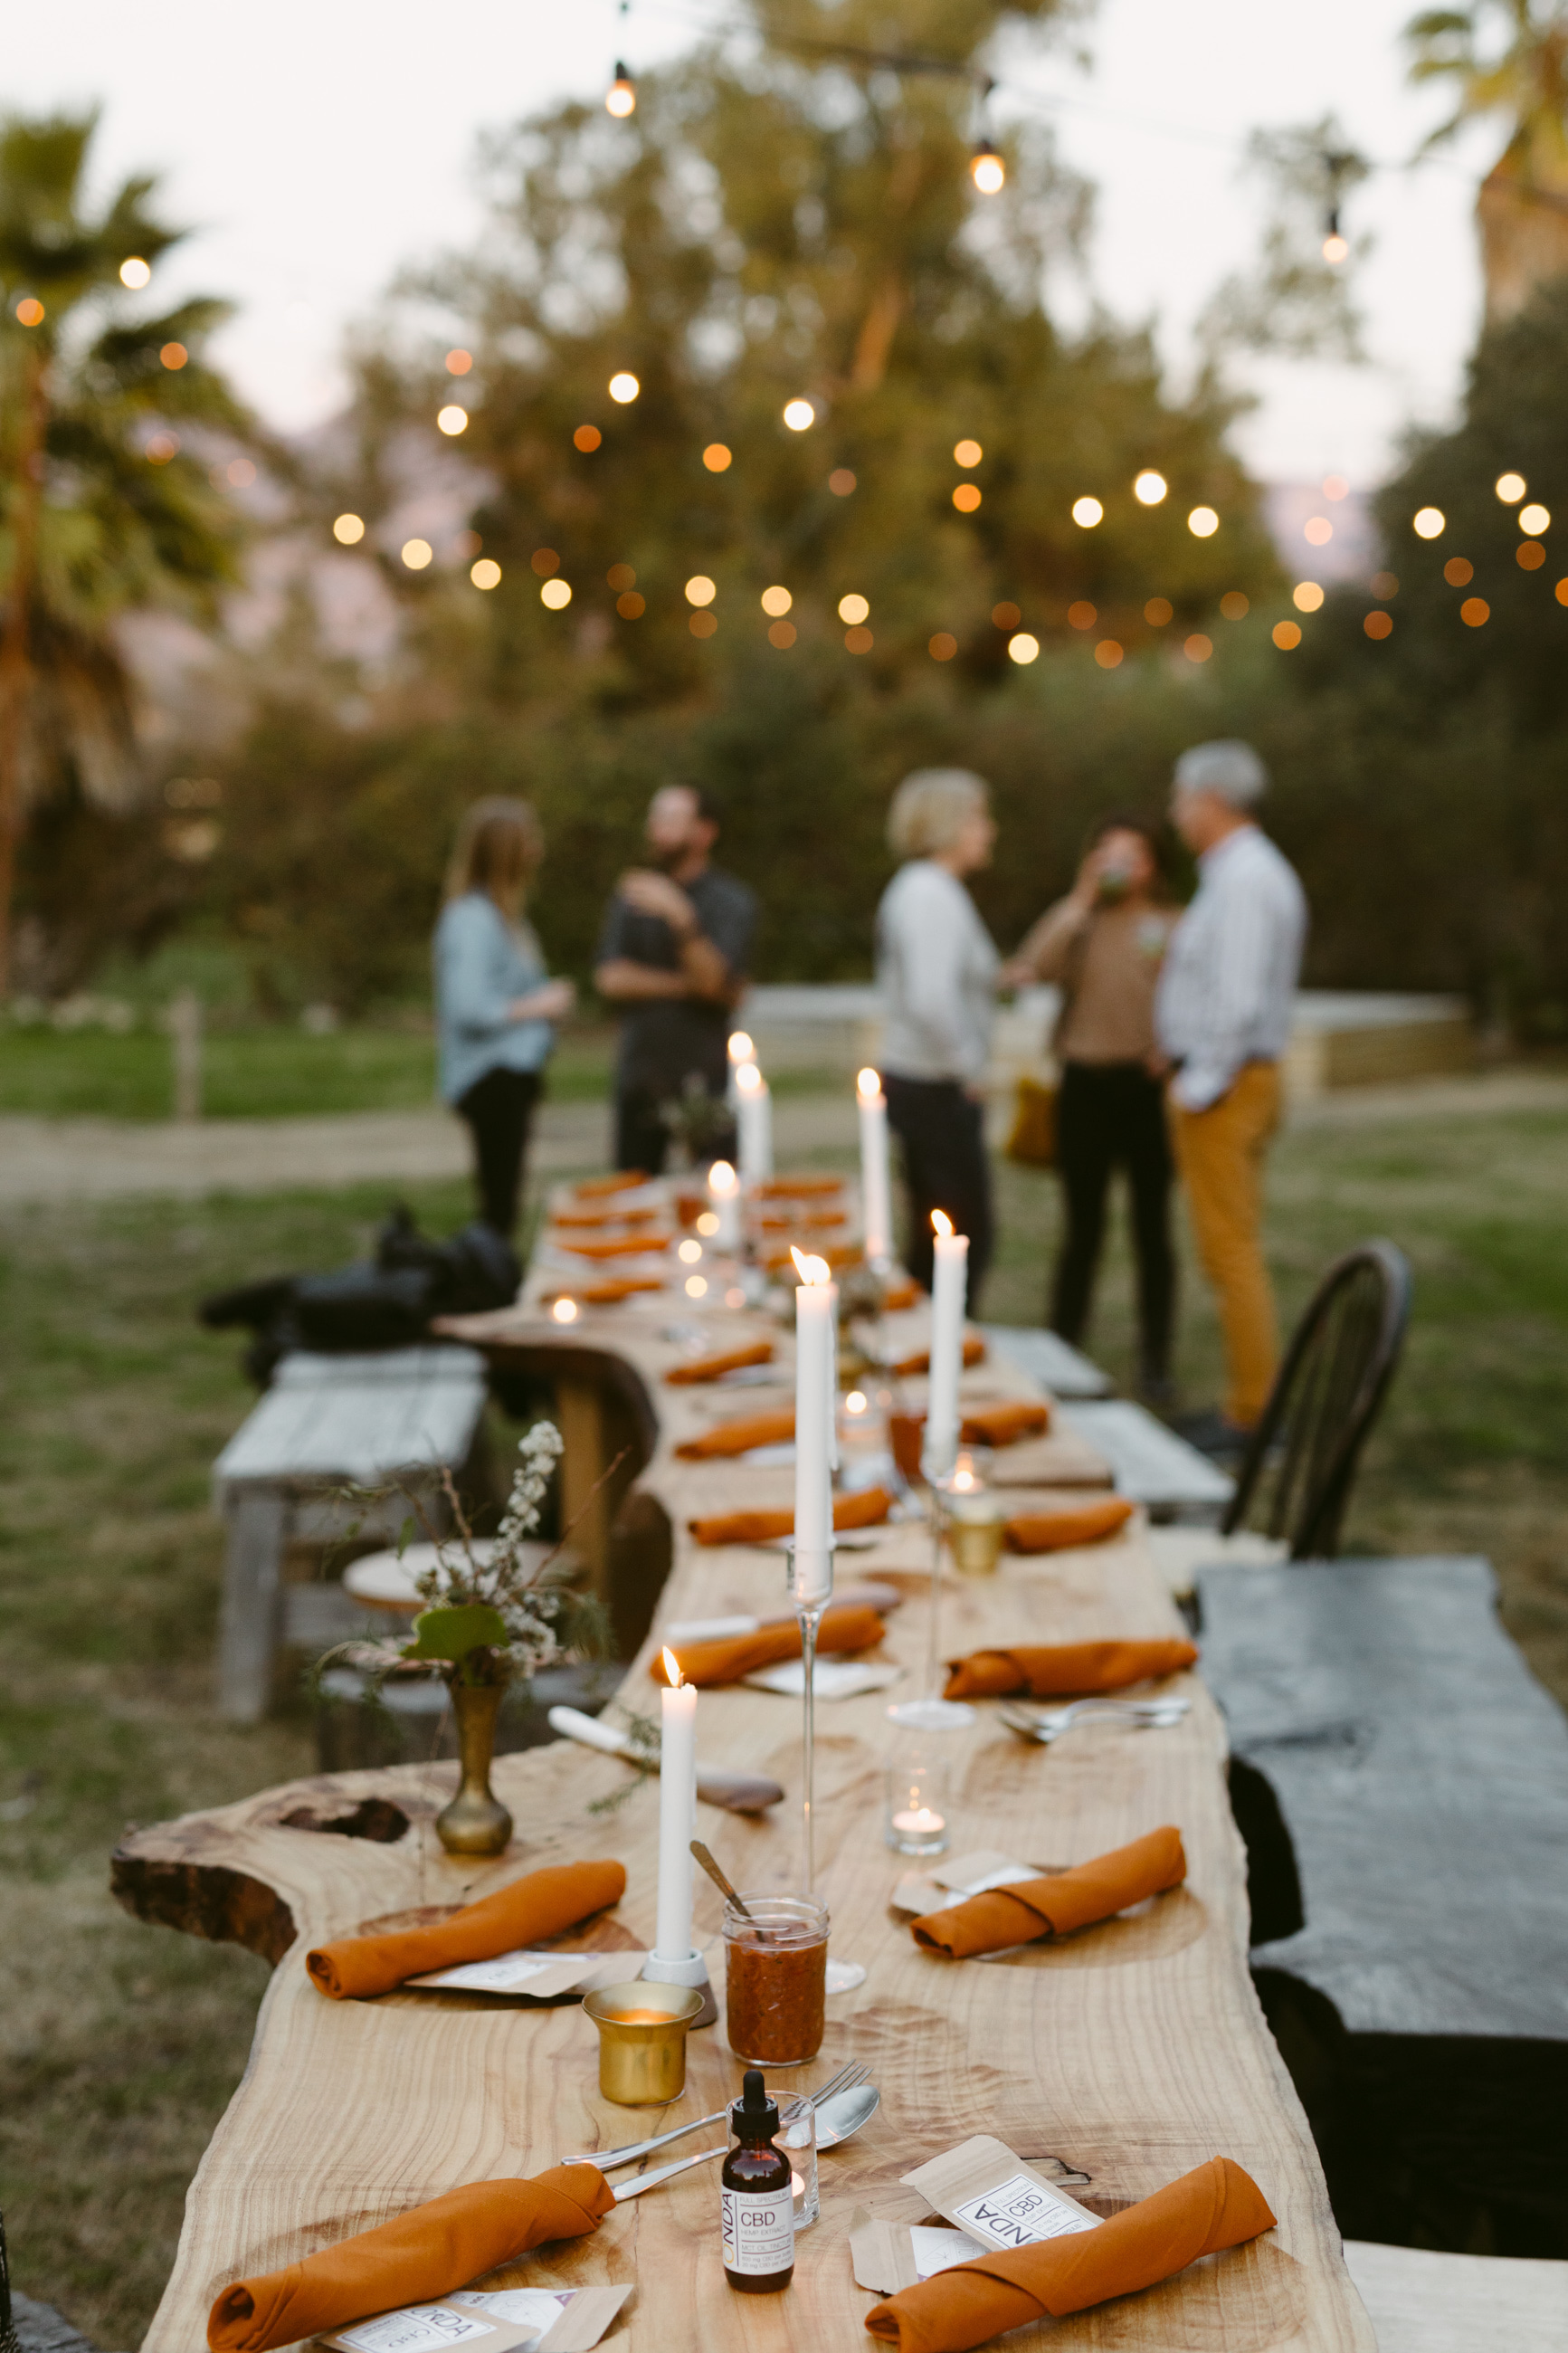 Designed to travel, - the Family Supper Plank is a 24 foot table hand carved from a live edge pair of Catalpa planks. It is a table to be filled with meals and memories, one building on the other.